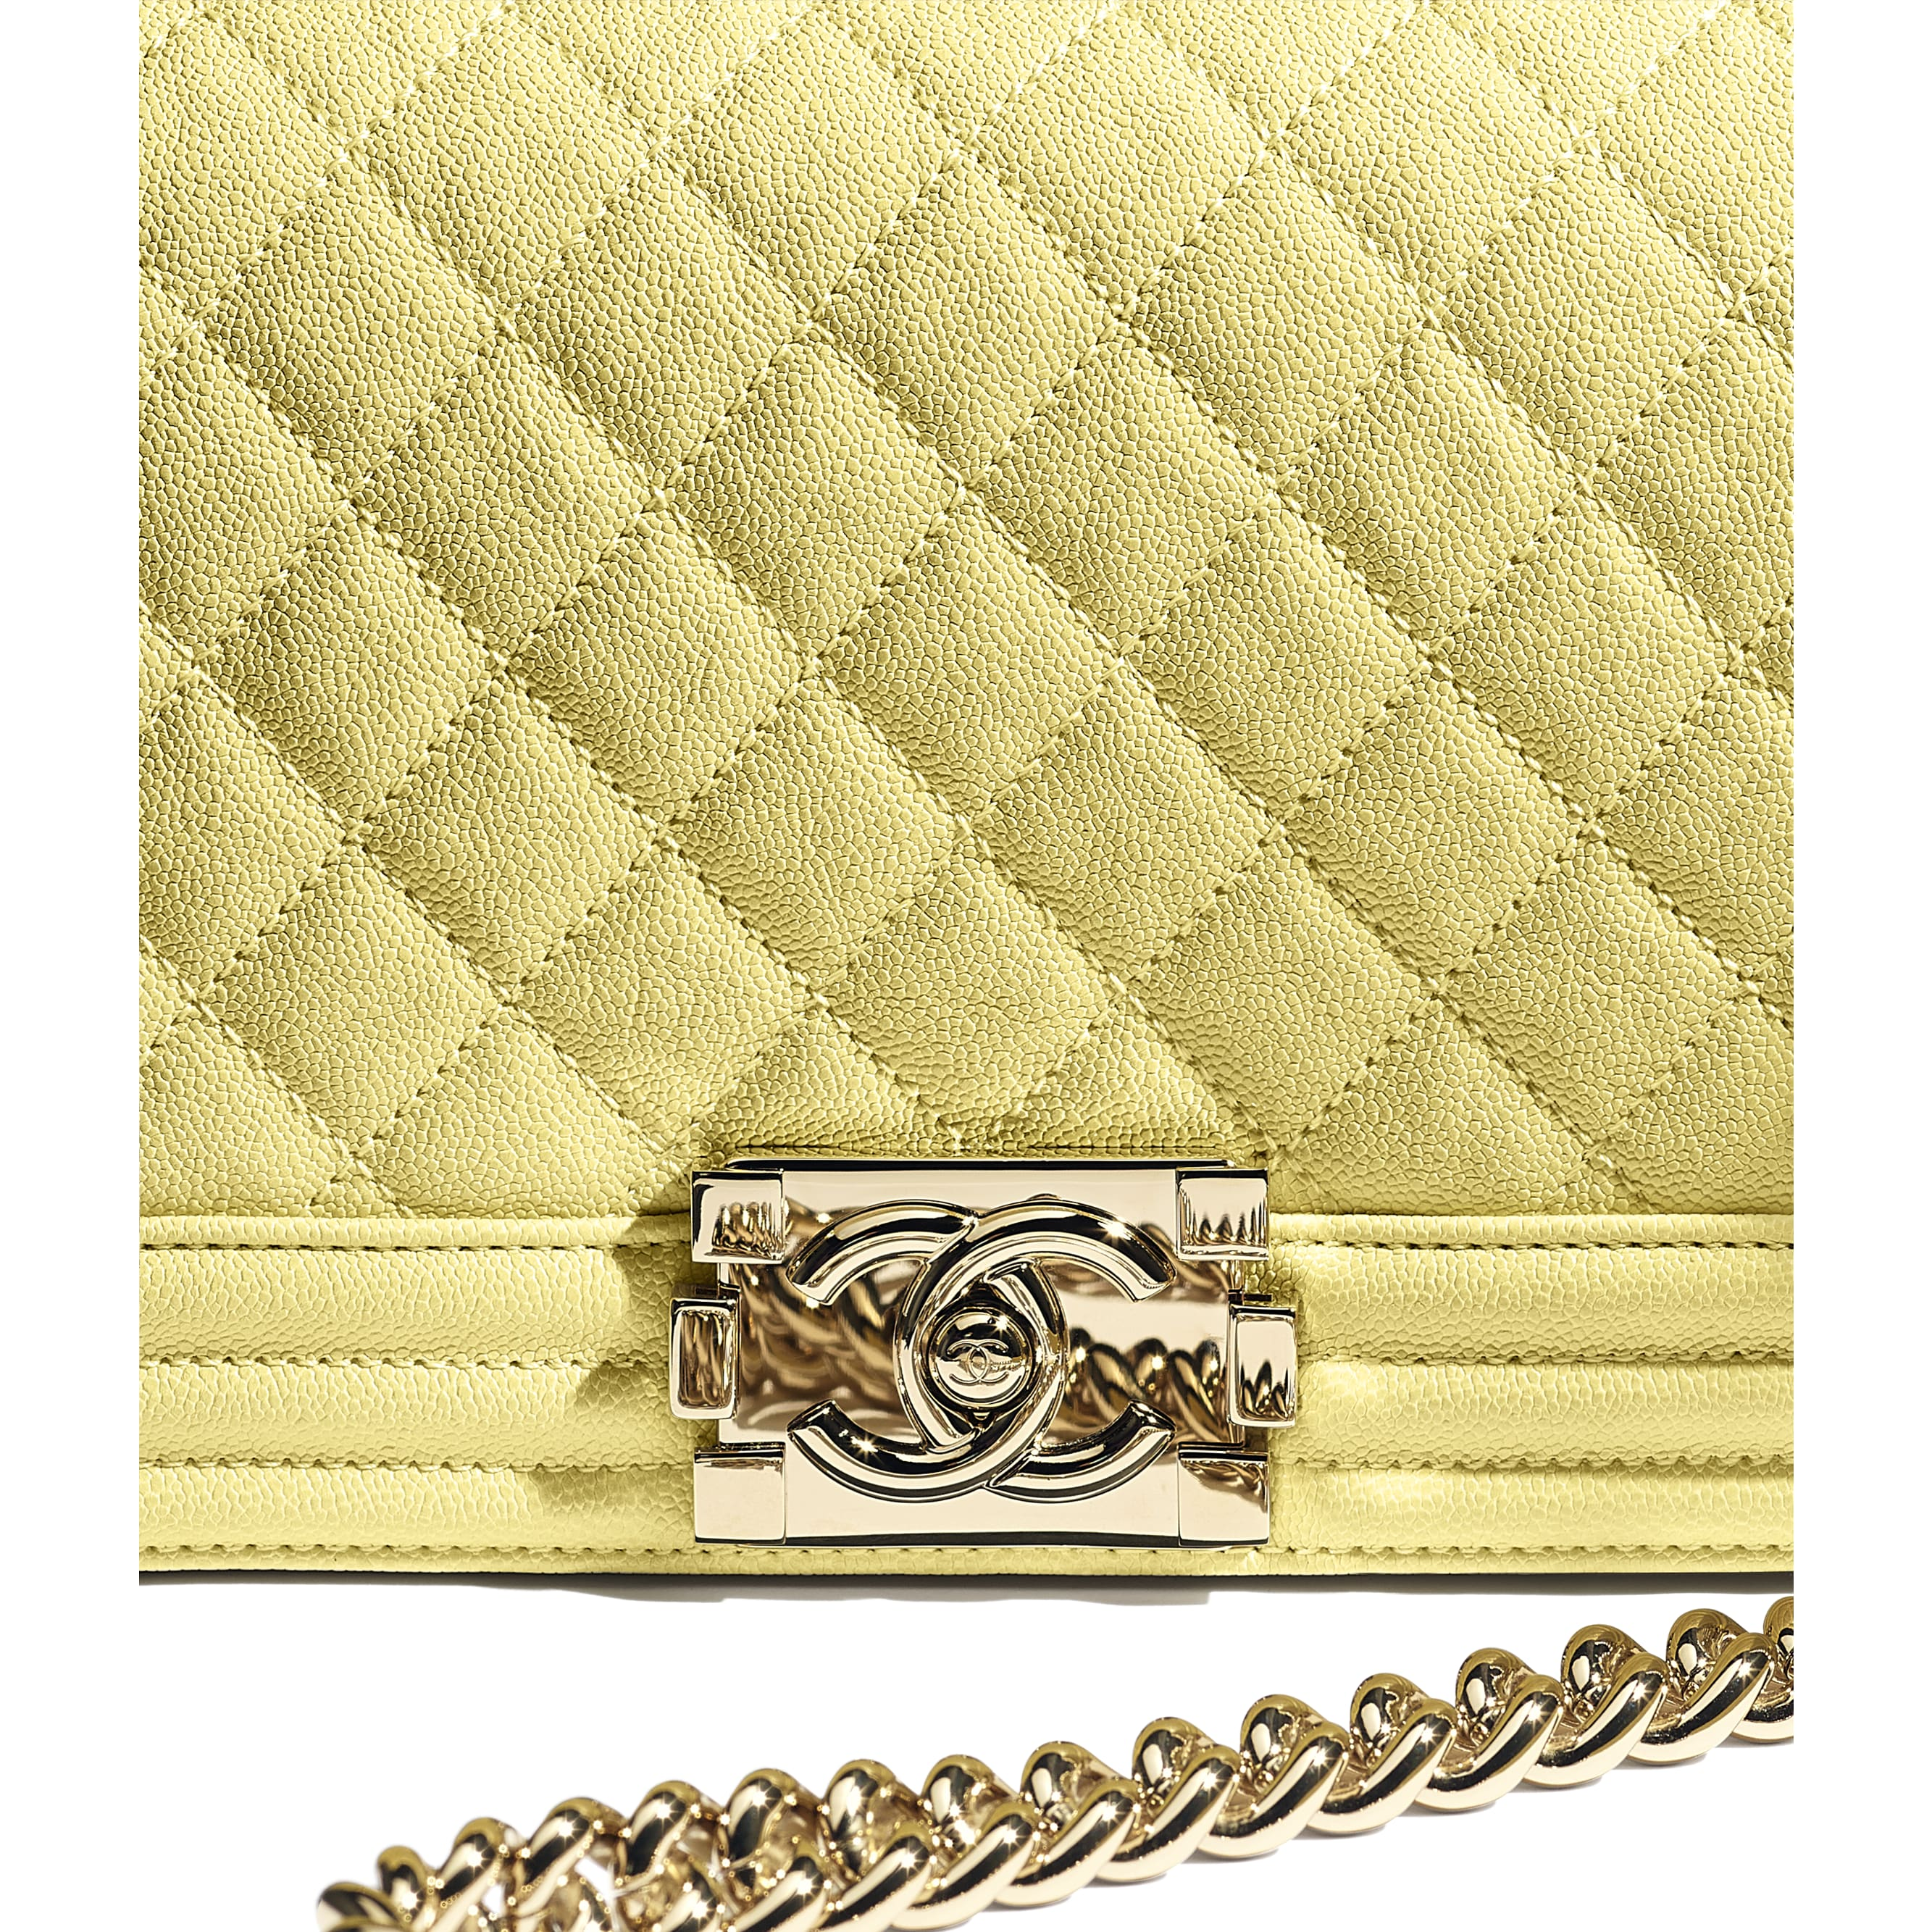 BOY CHANEL Handbag - Yellow - Grained Calfskin & Gold-Tone Metal - CHANEL - Extra view - see standard sized version